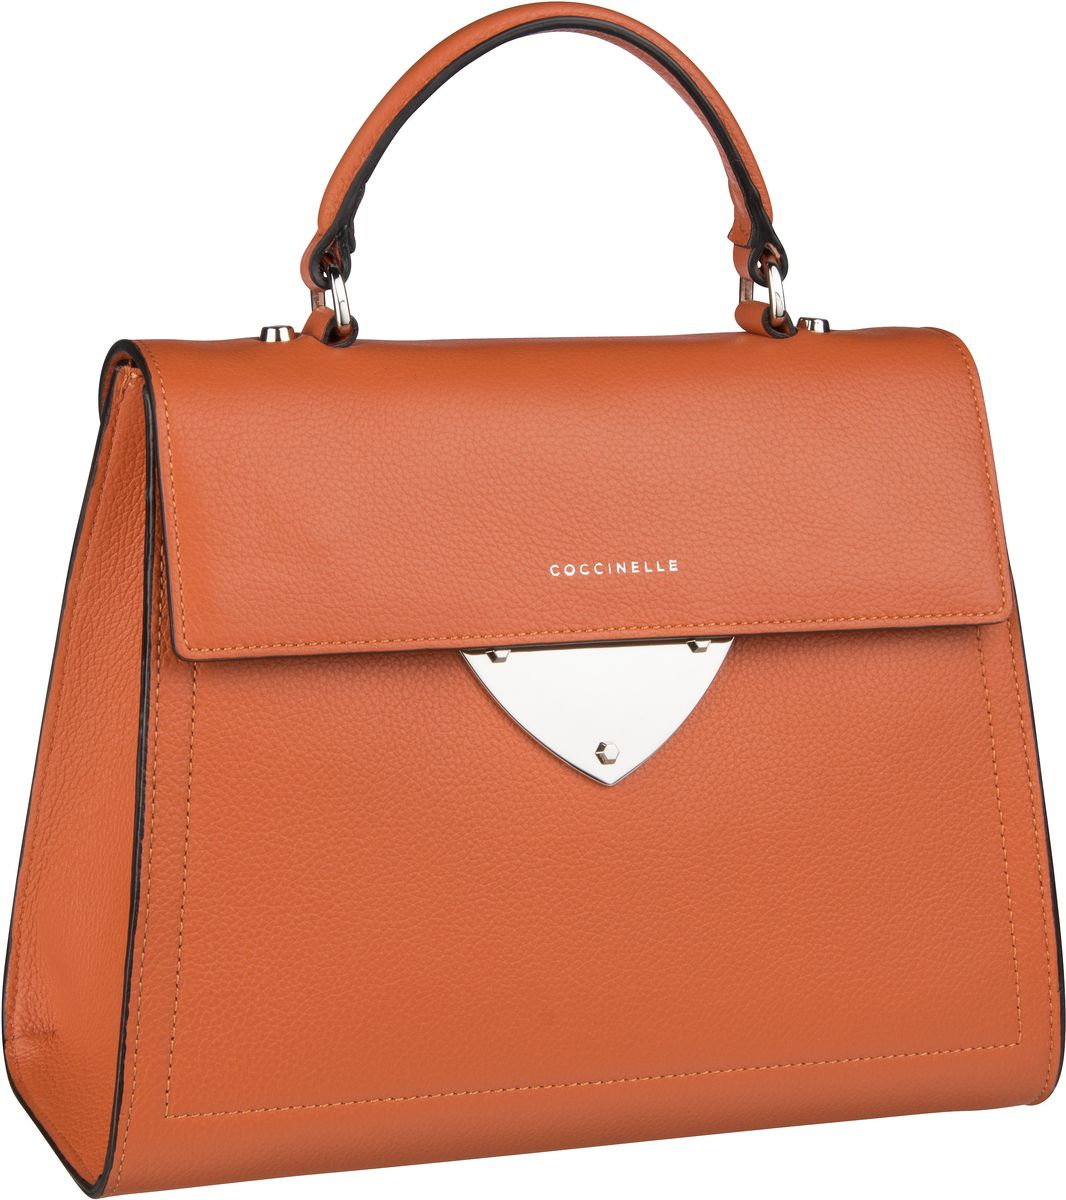 Coccinelle Handtasche B14 1803 Flash Orange